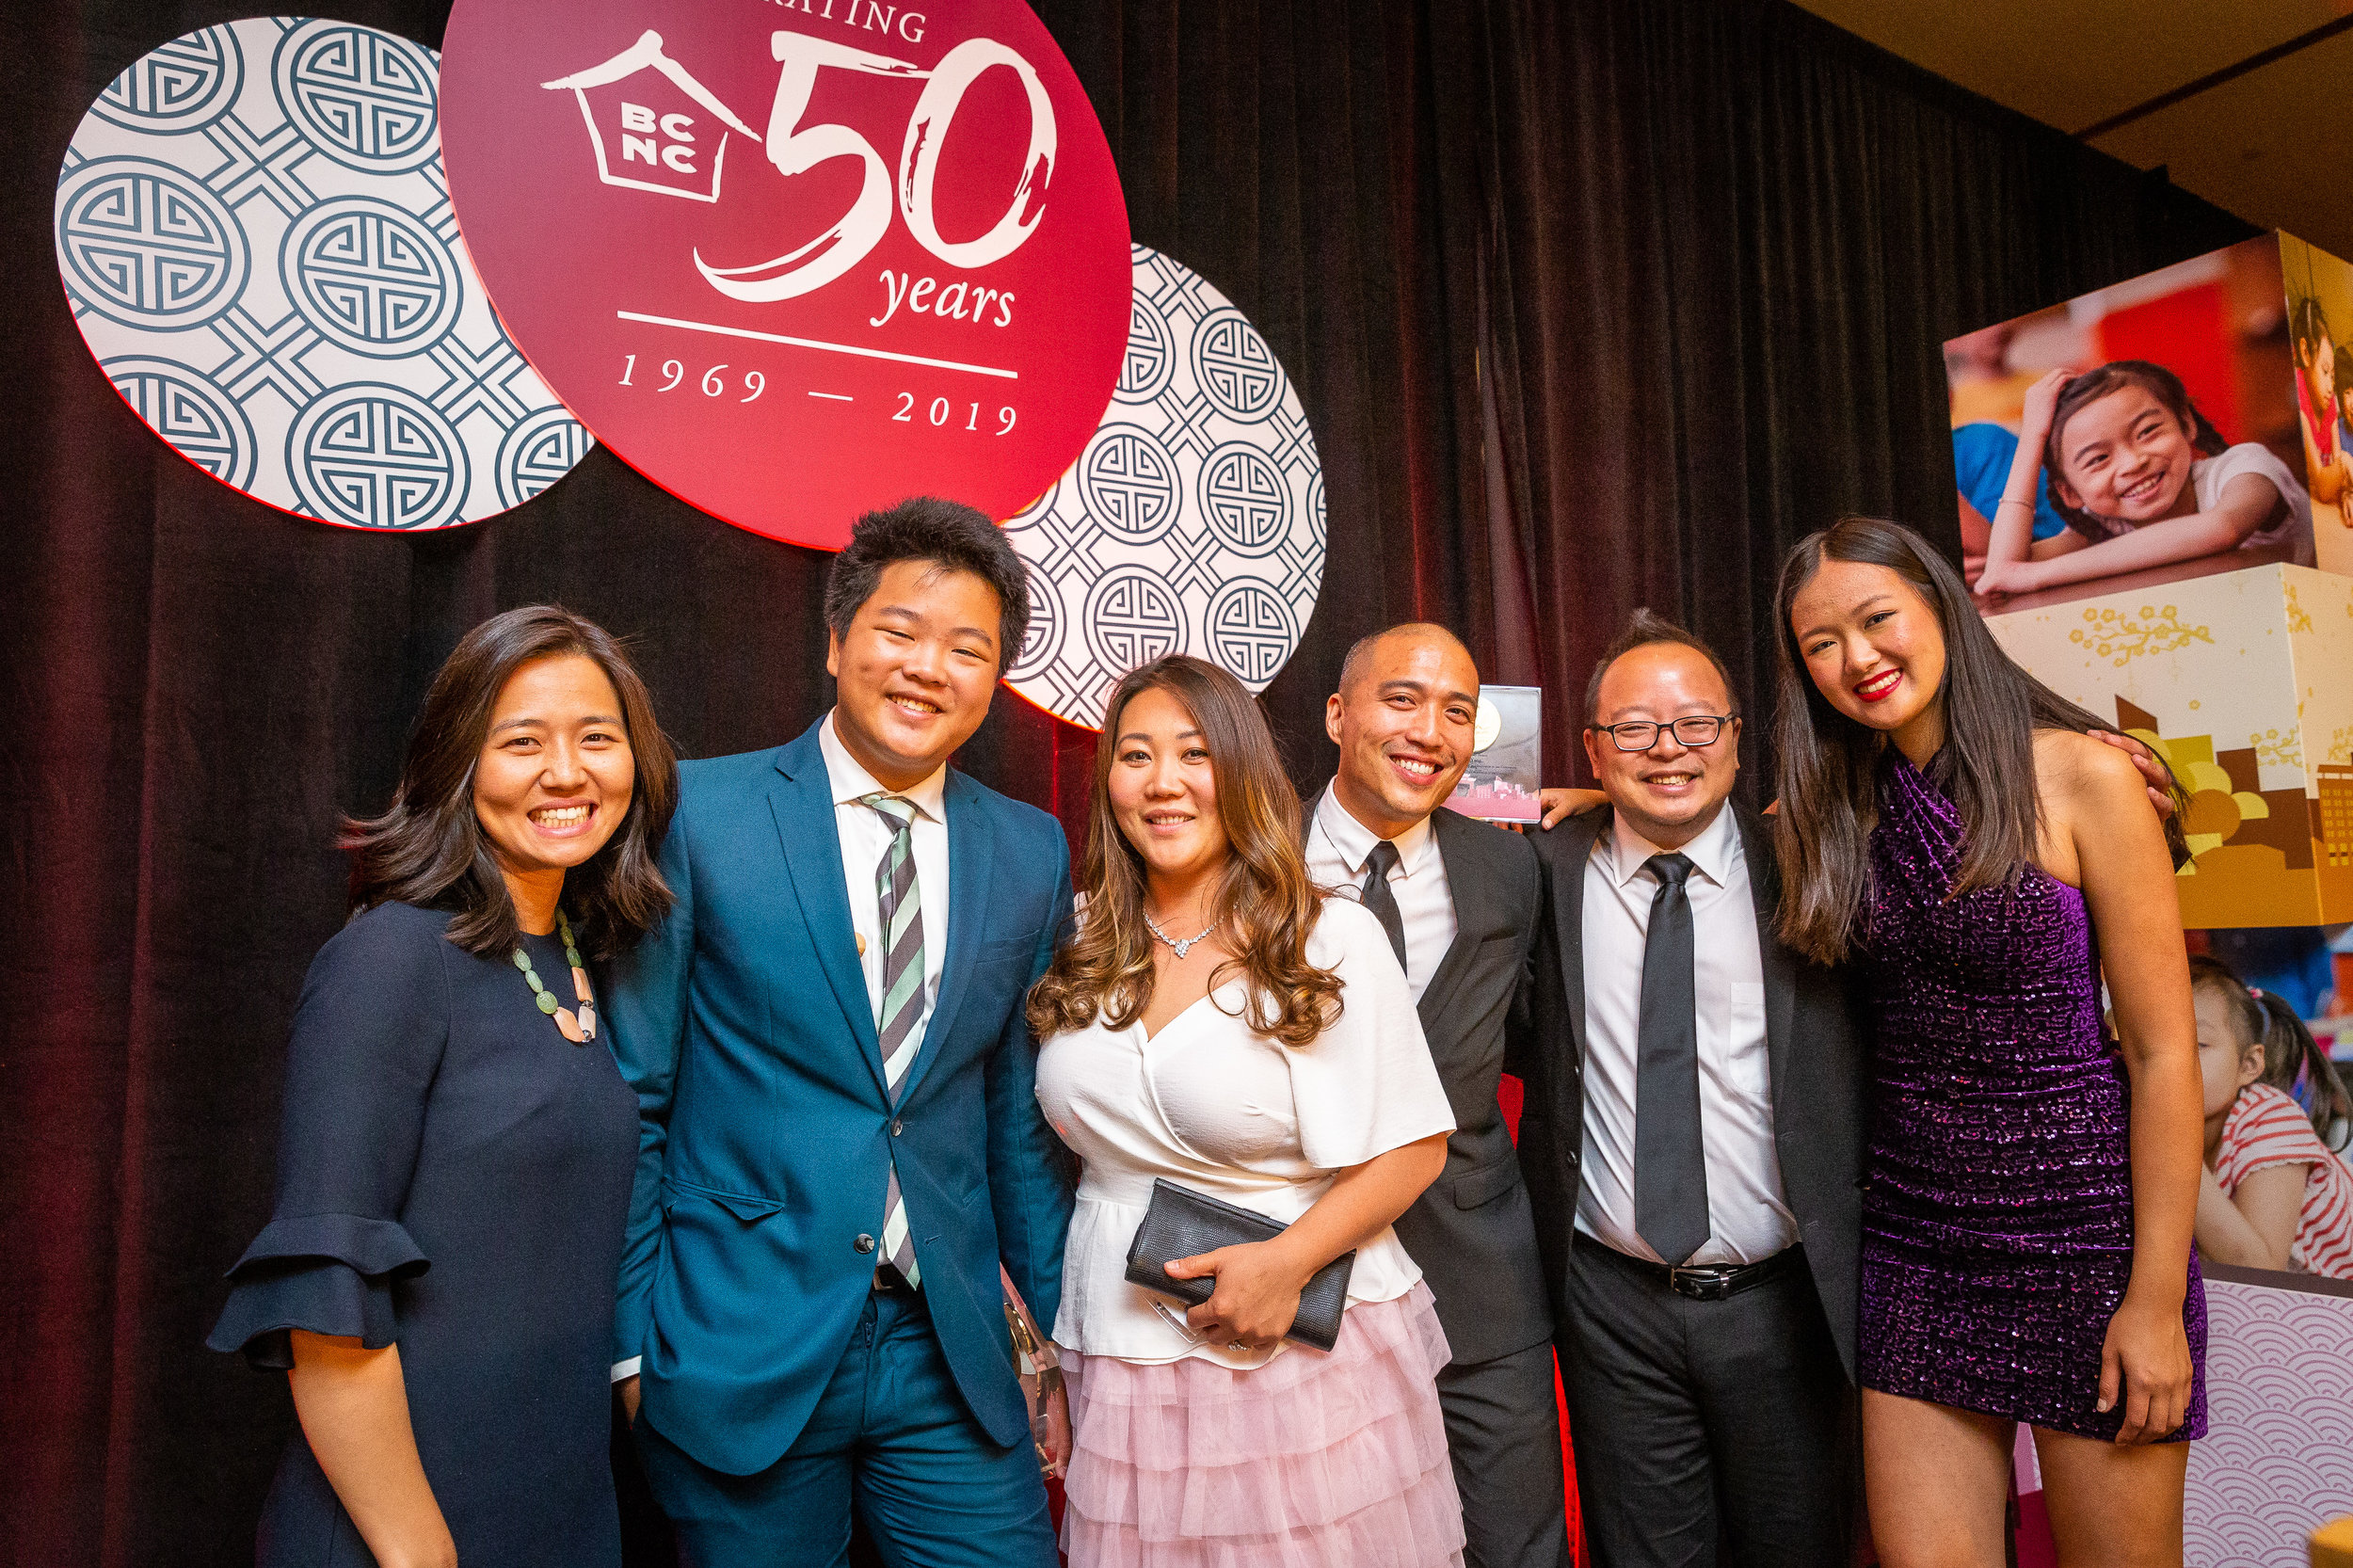 From left to right: Michelle Wu, Hudson Yang, Sopheak Tek, Giles Li, Jeff Yang, Katherine Ho